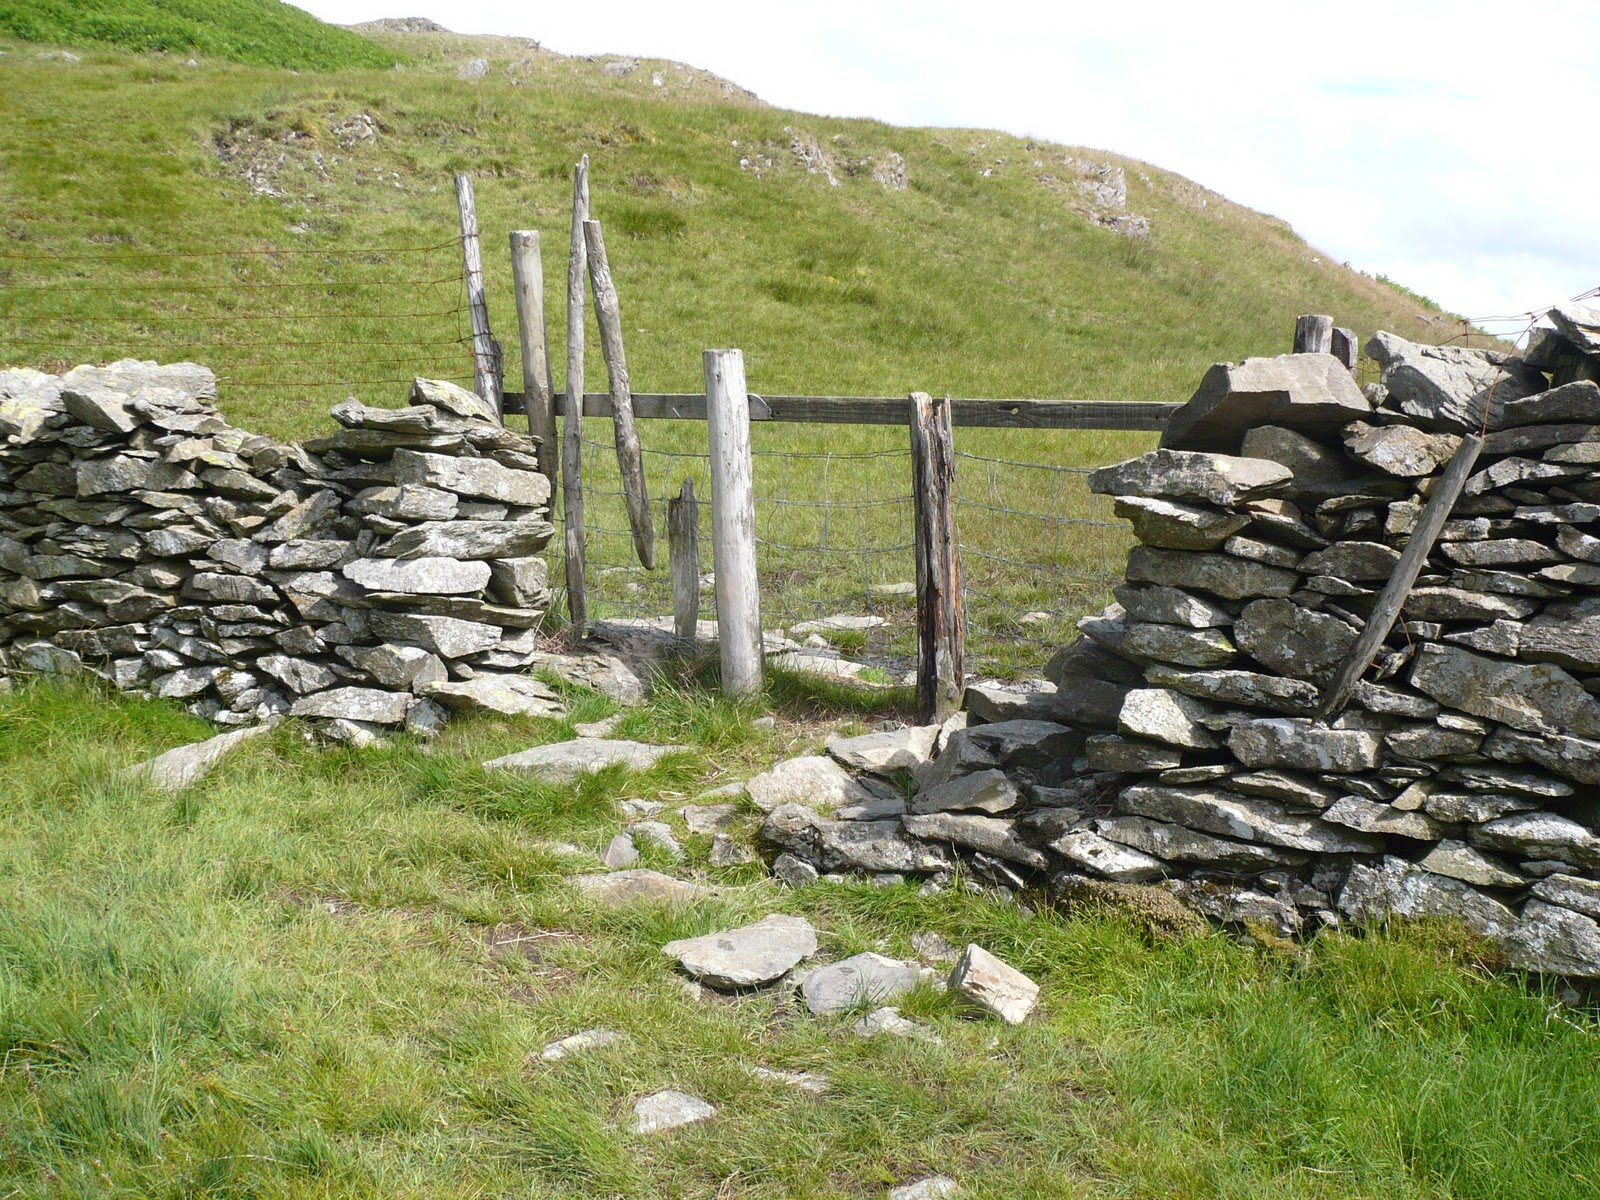 Hartsop hall cottages 171 walking holiday cottages walking - It Was Useful Having Lunch At The New Dungeon Ghyll Hotel And Looking At The Dinner Menu And Feeling The Ambience Of The Place I Had Heard Much About And